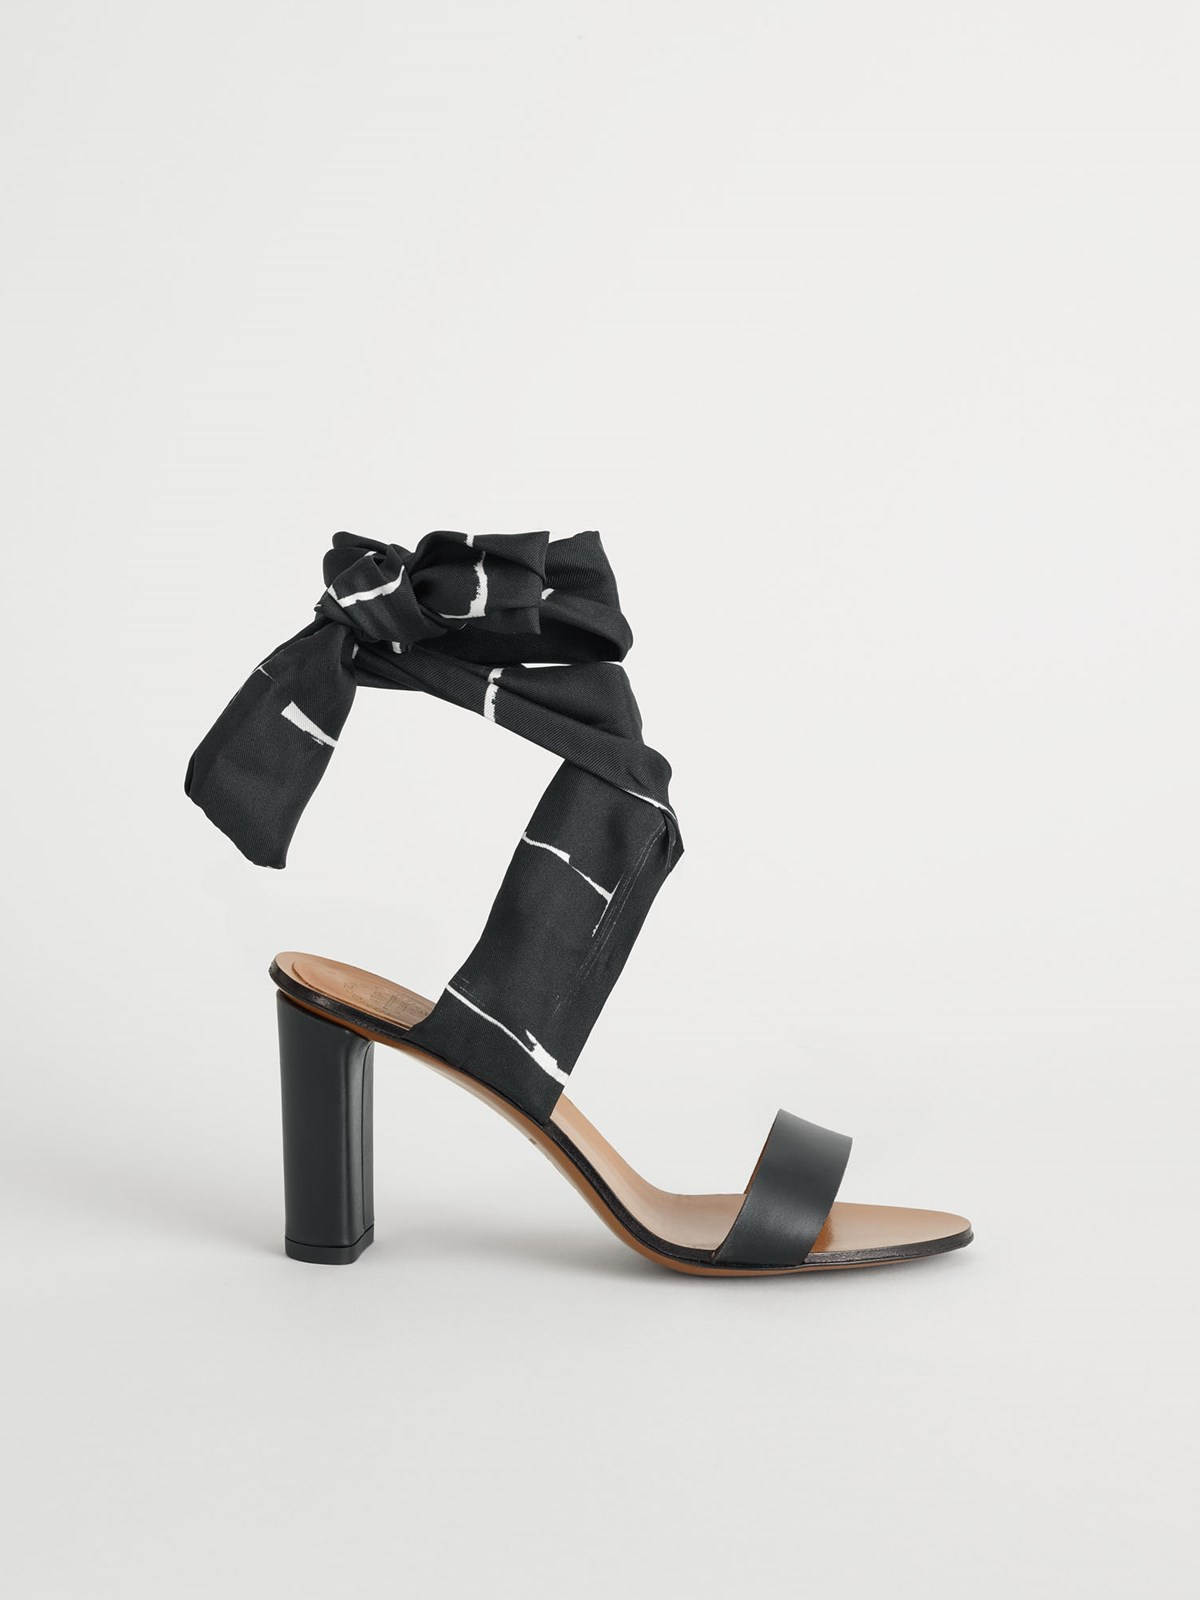 Vanze Black White Ankle strap heels